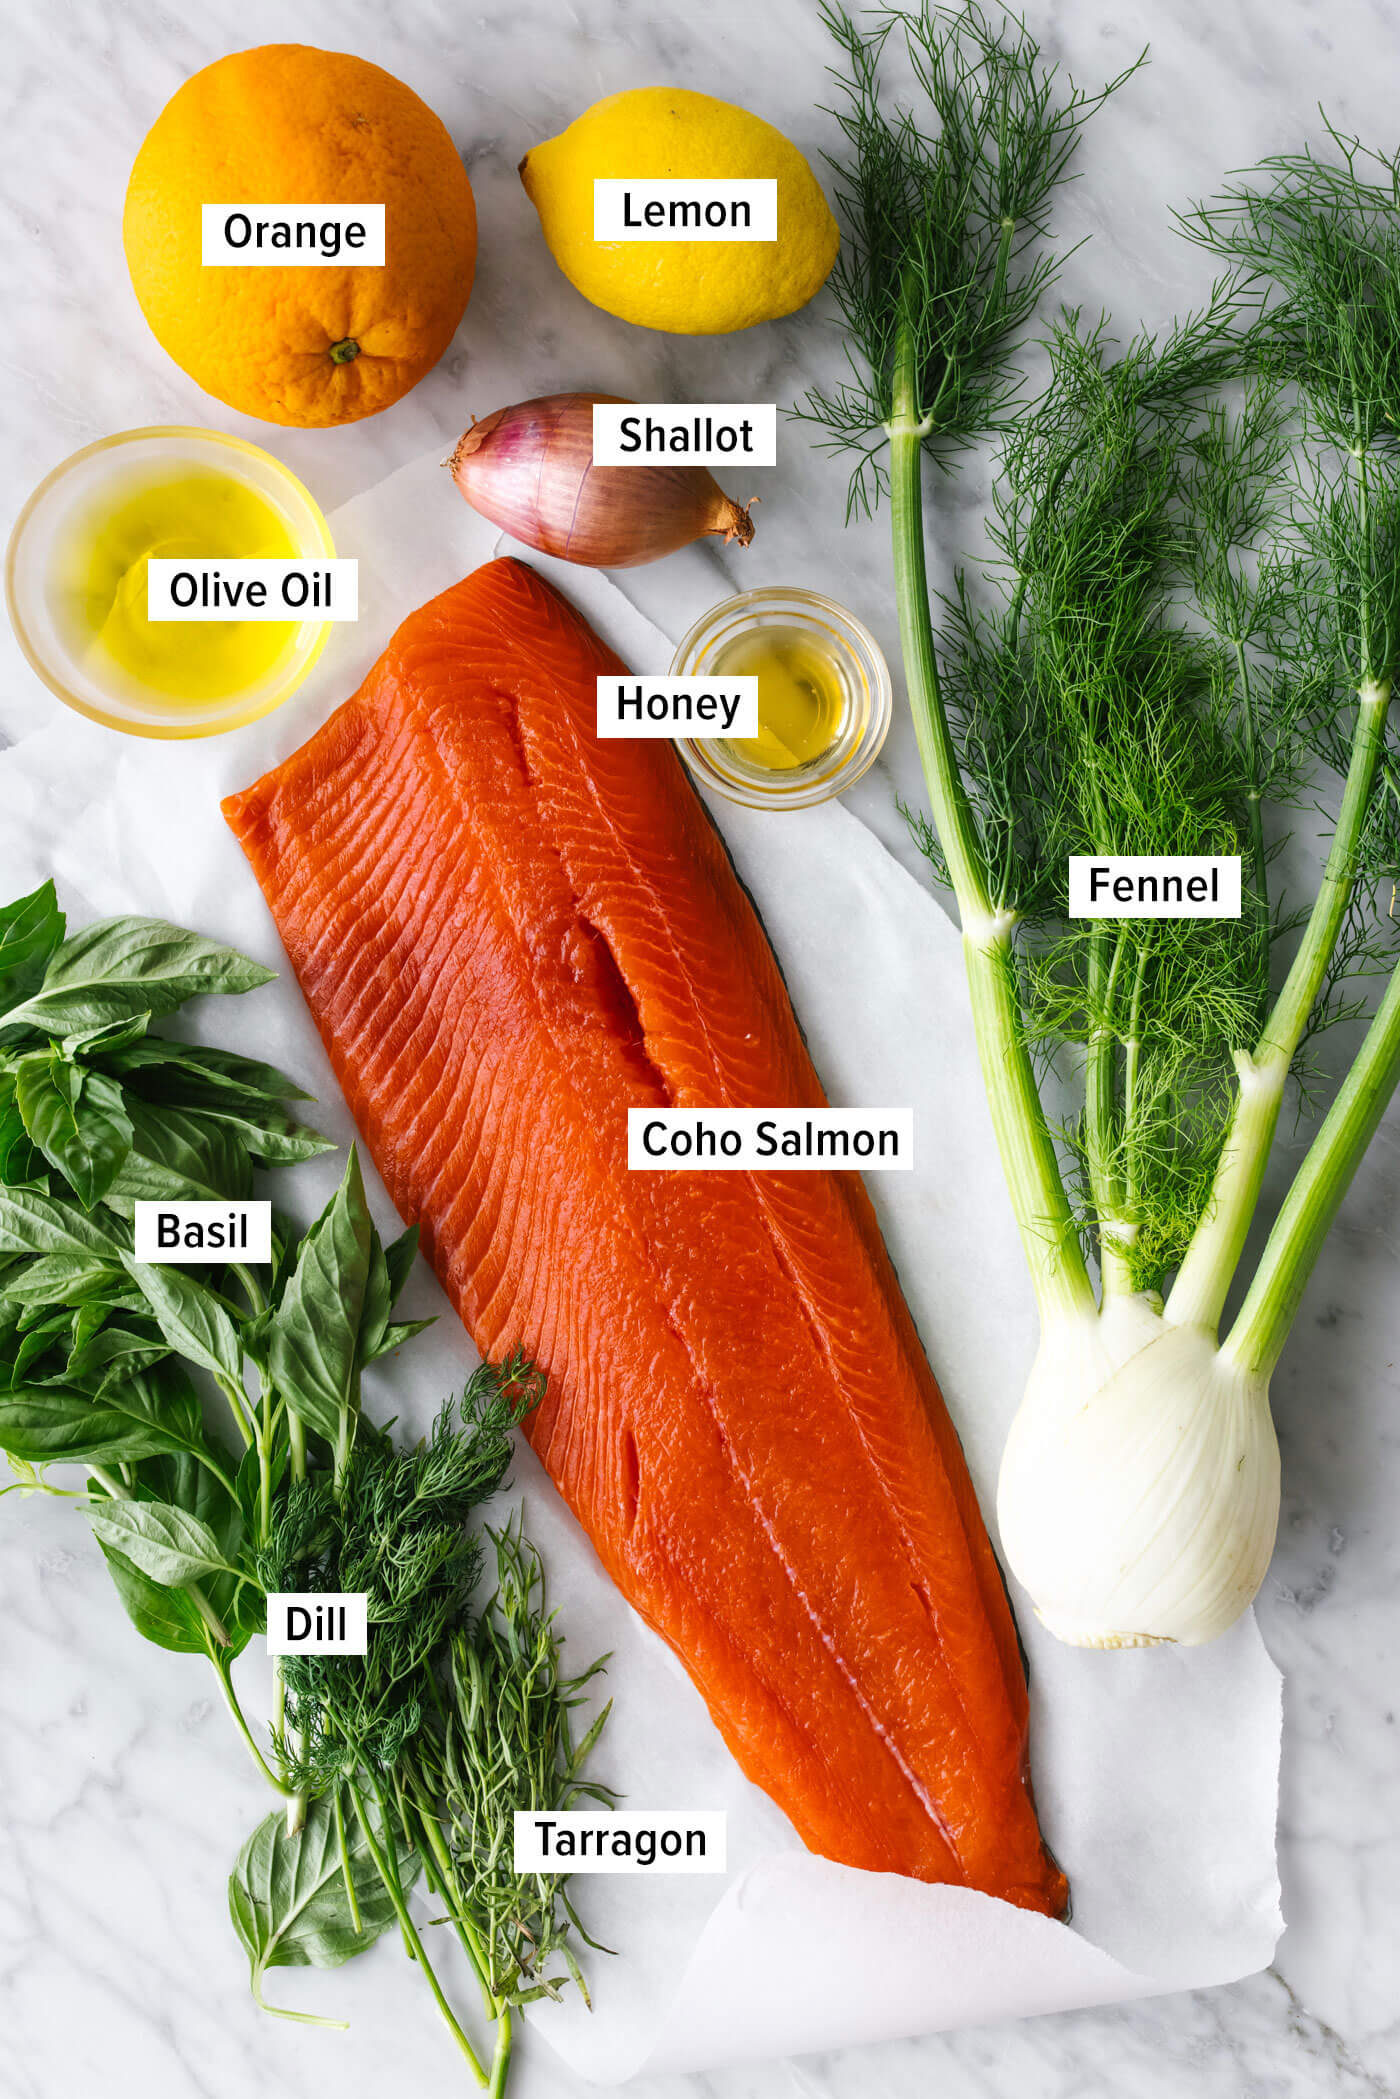 Ingredients for slow roasted salmon with fennel on a table.